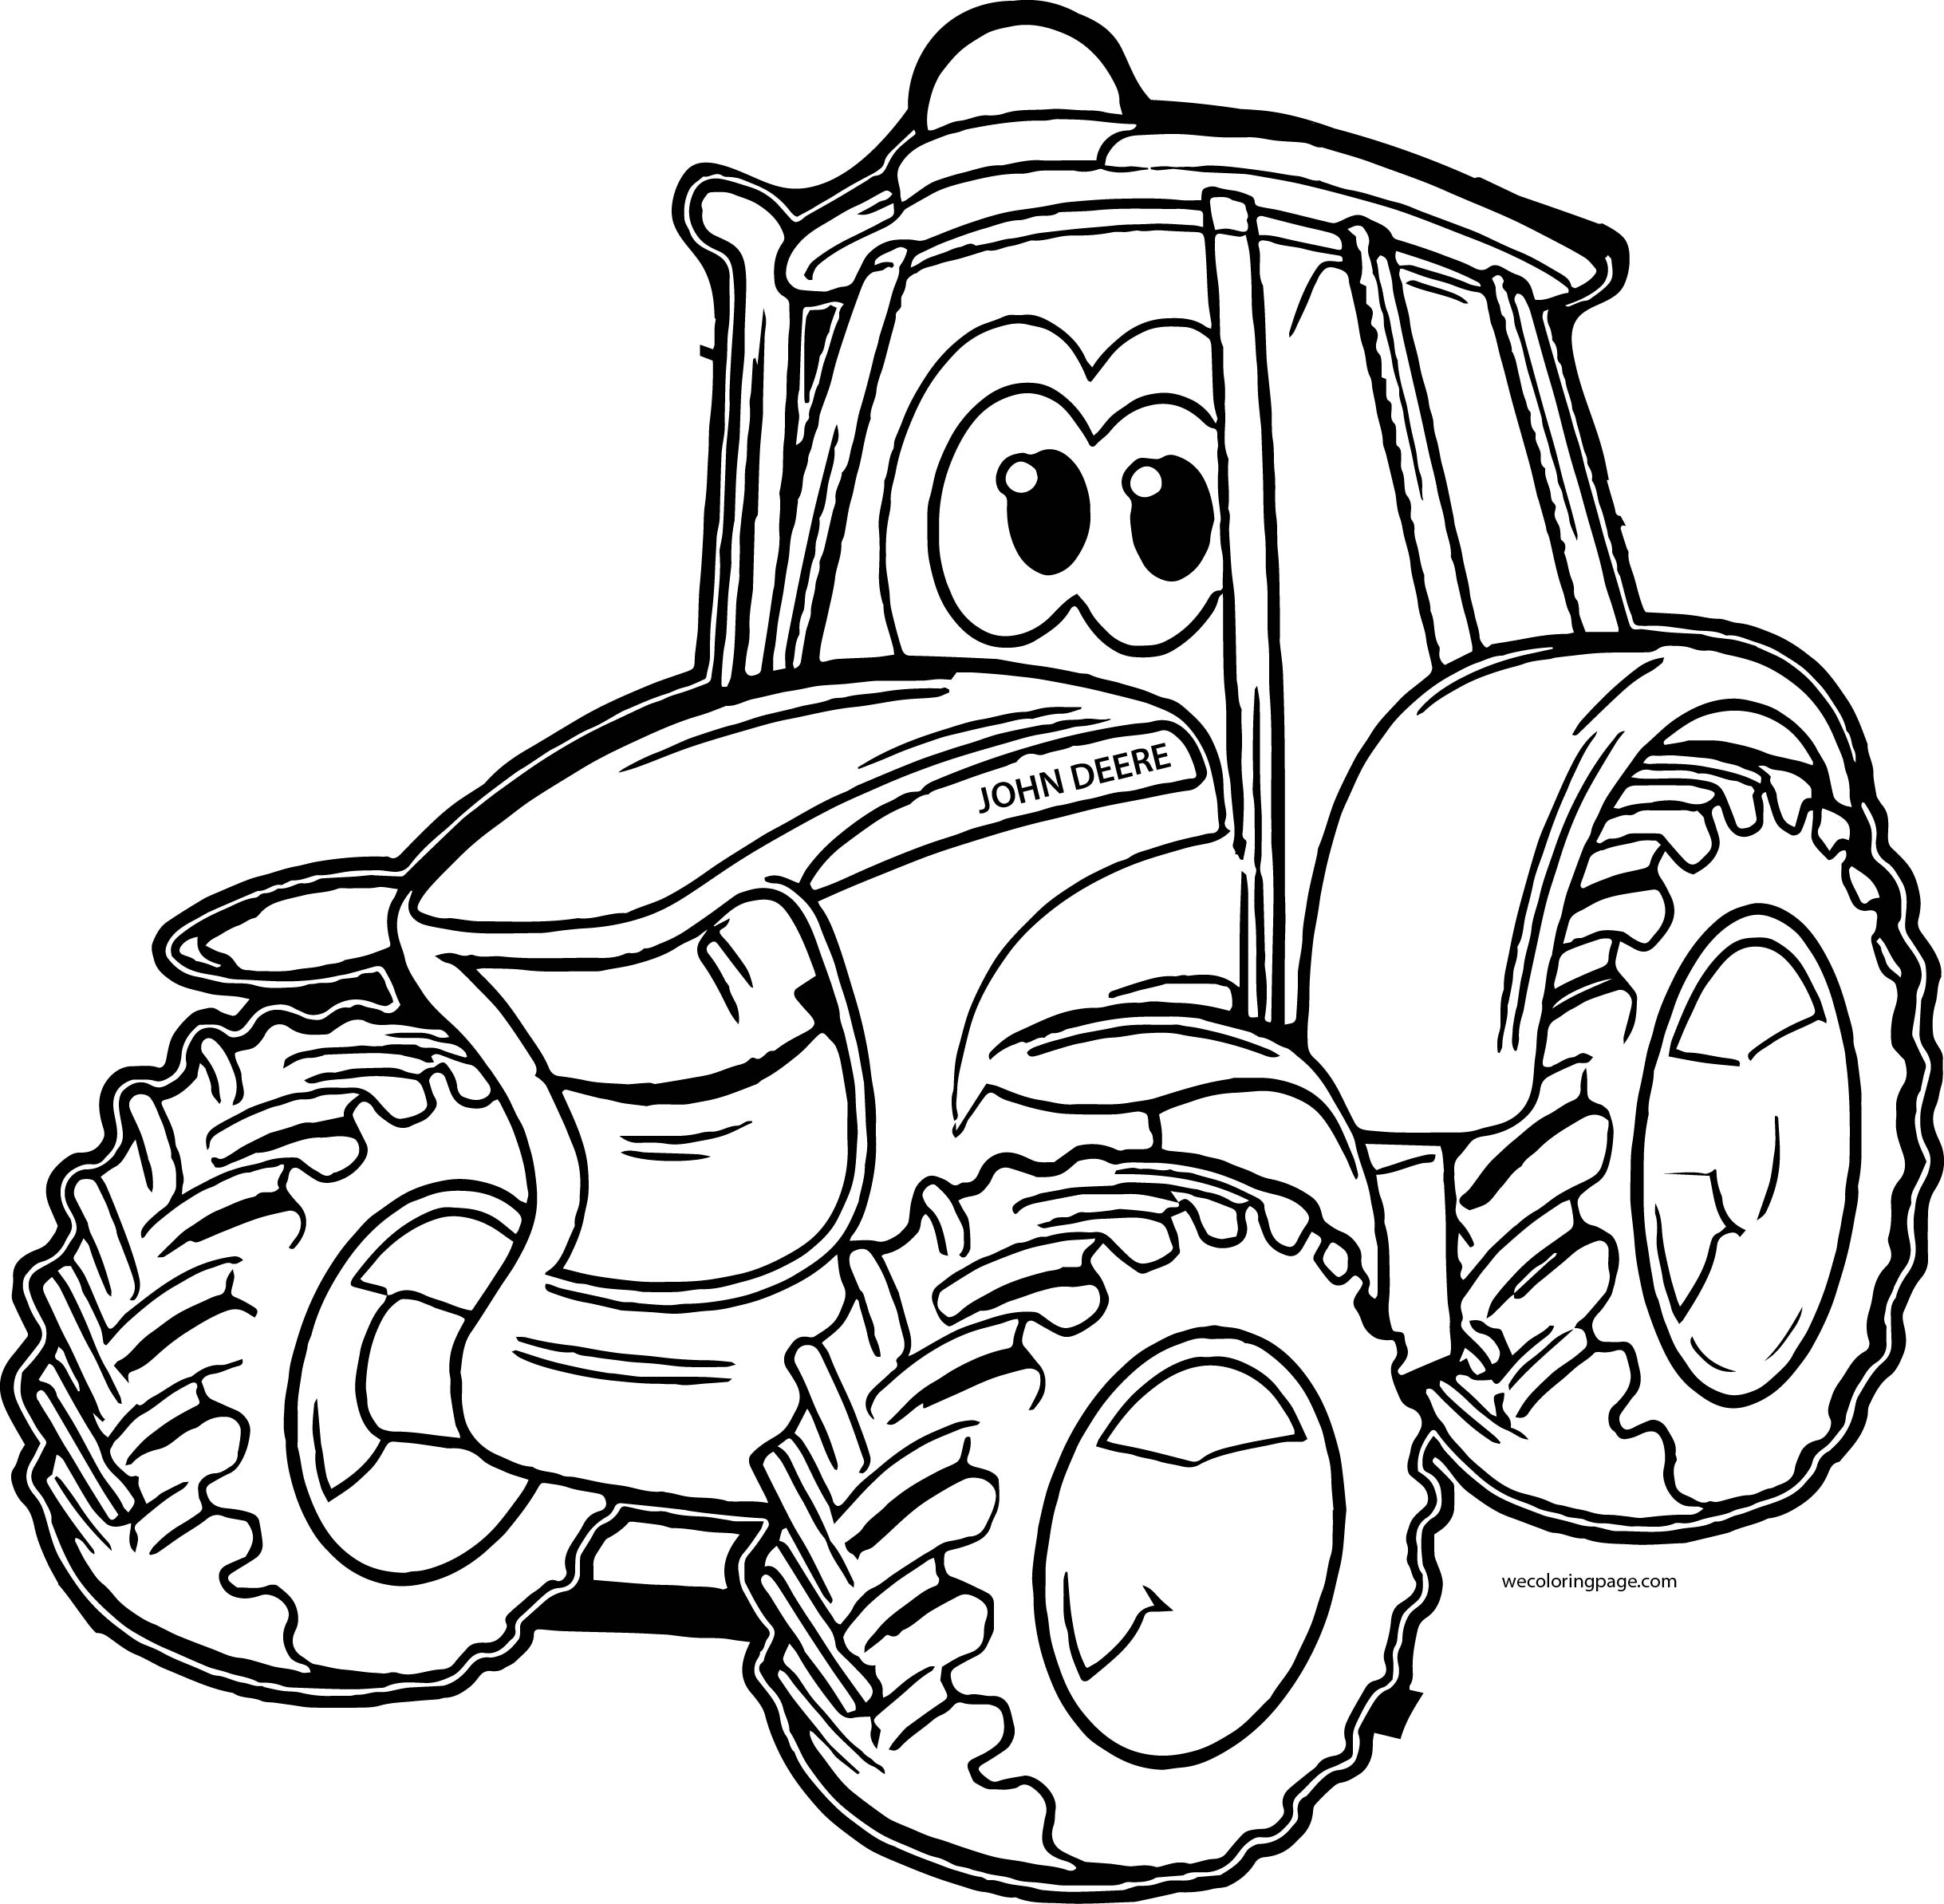 John Johnny Deere Tractor Coloring Pages